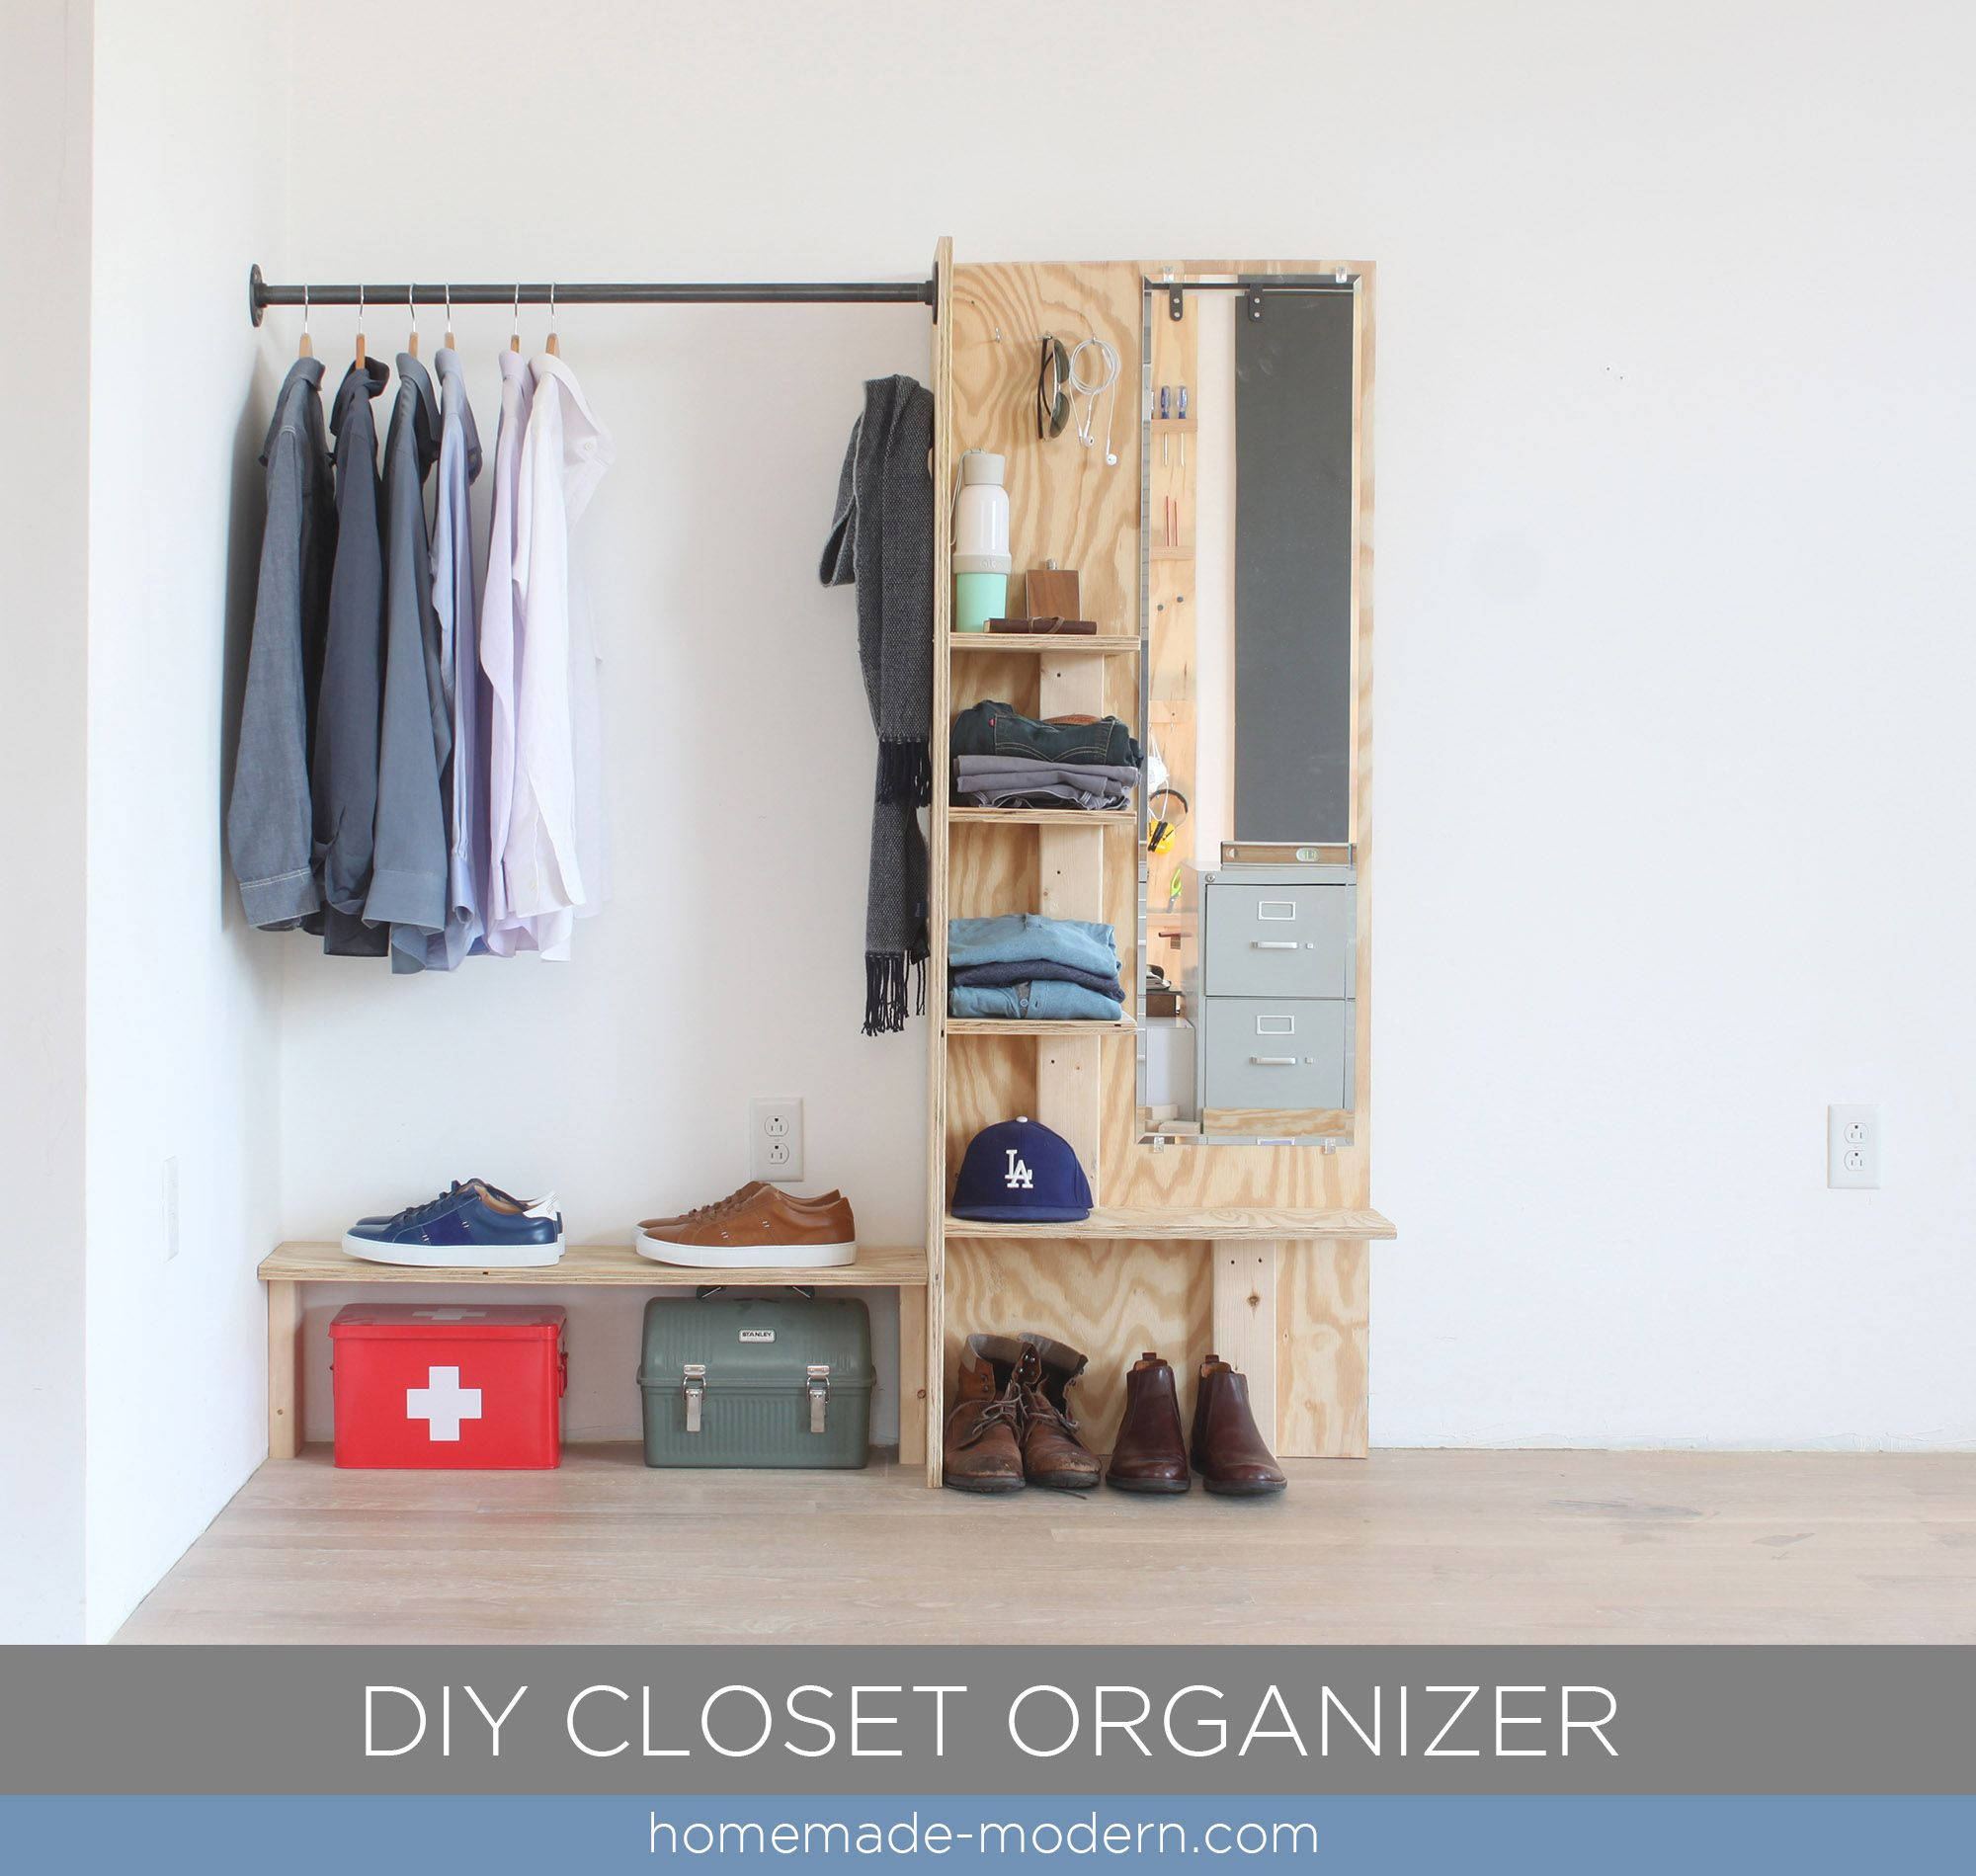 This diy closet organizer is made from materials available at home this diy closet organizer is made from materials available at home depot full instructions can be found at homemade modern solutioingenieria Images